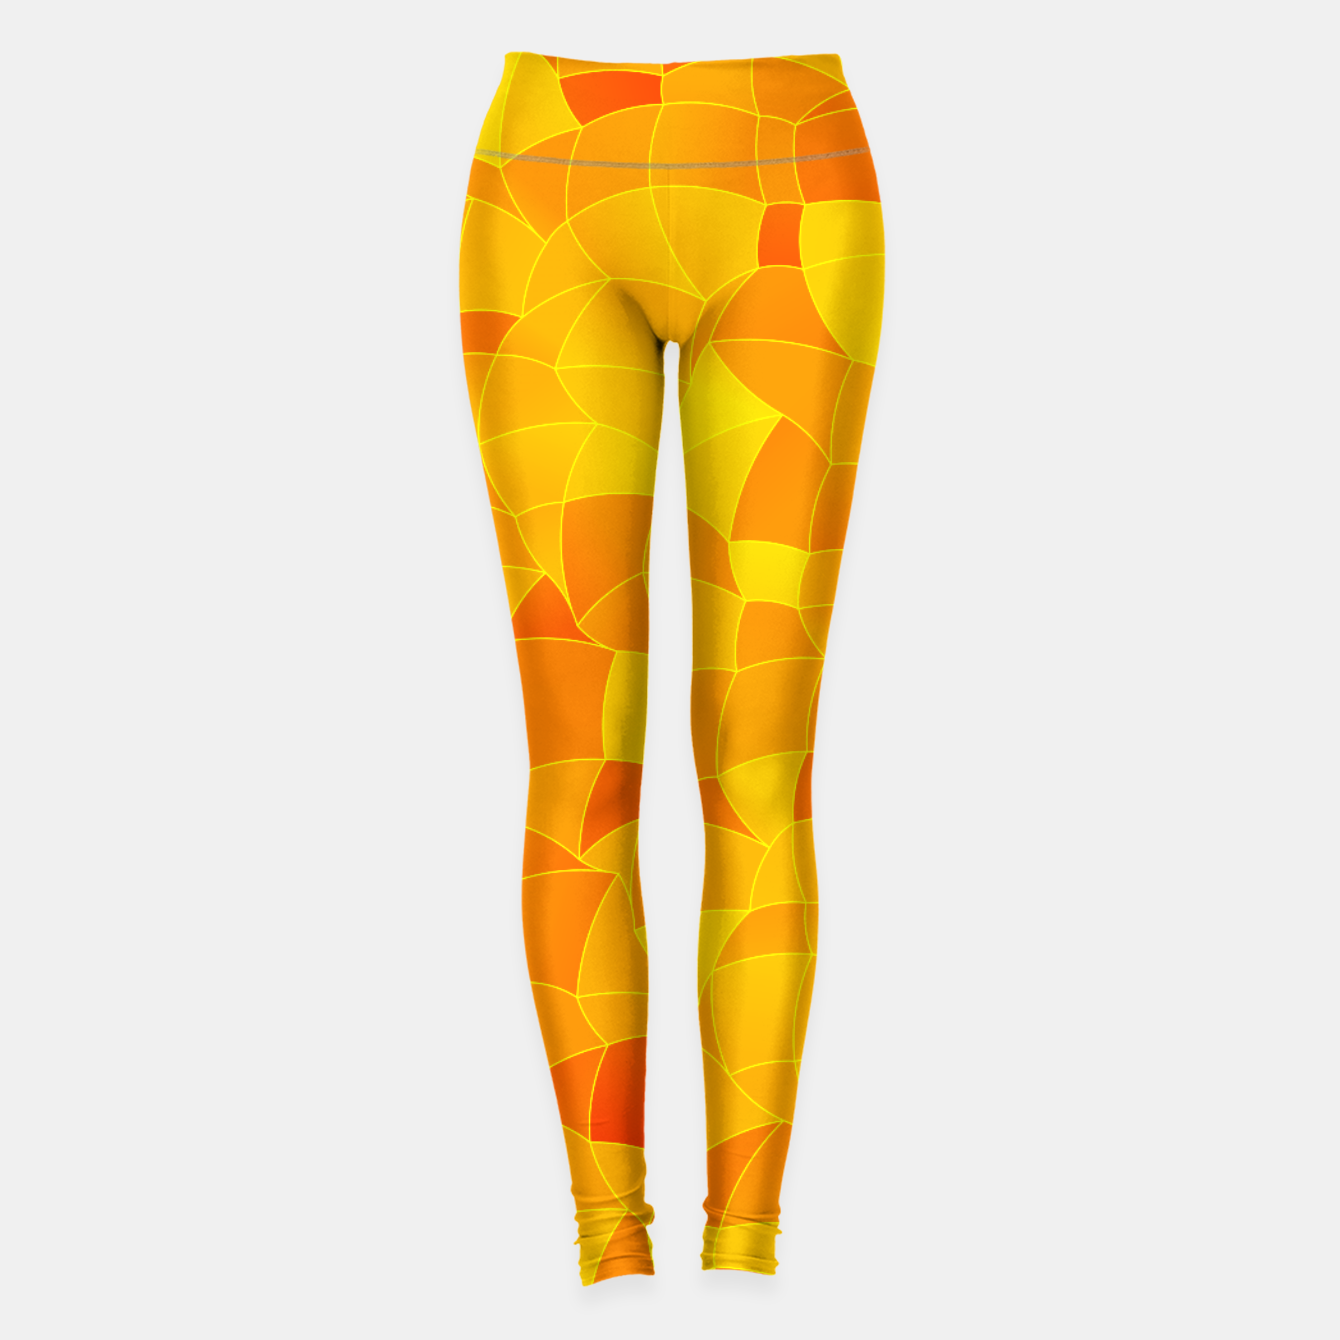 Image of Geometric Shapes Fragments Pattern 2 yri Leggings - Live Heroes